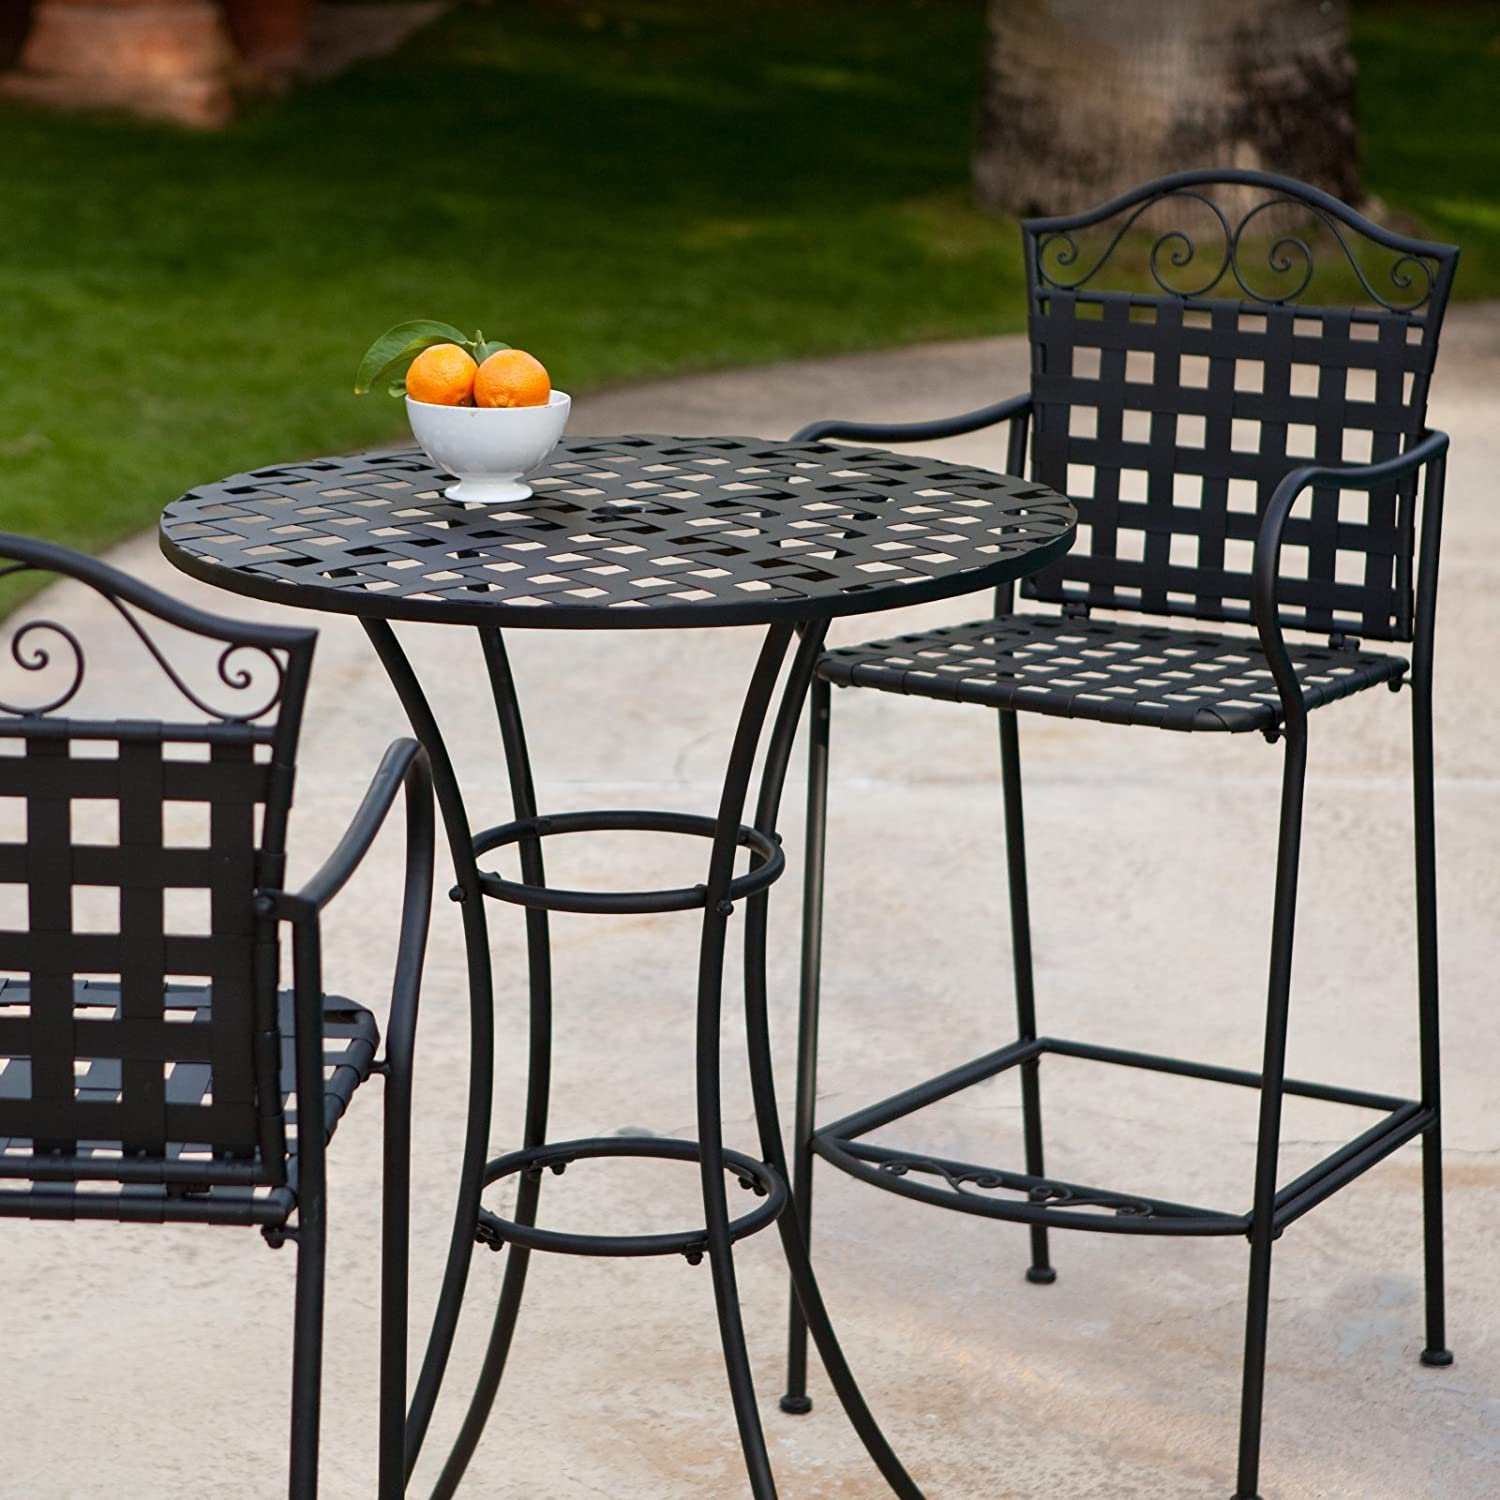 own tall a furniture on outdoor budget waco set your patio make modern